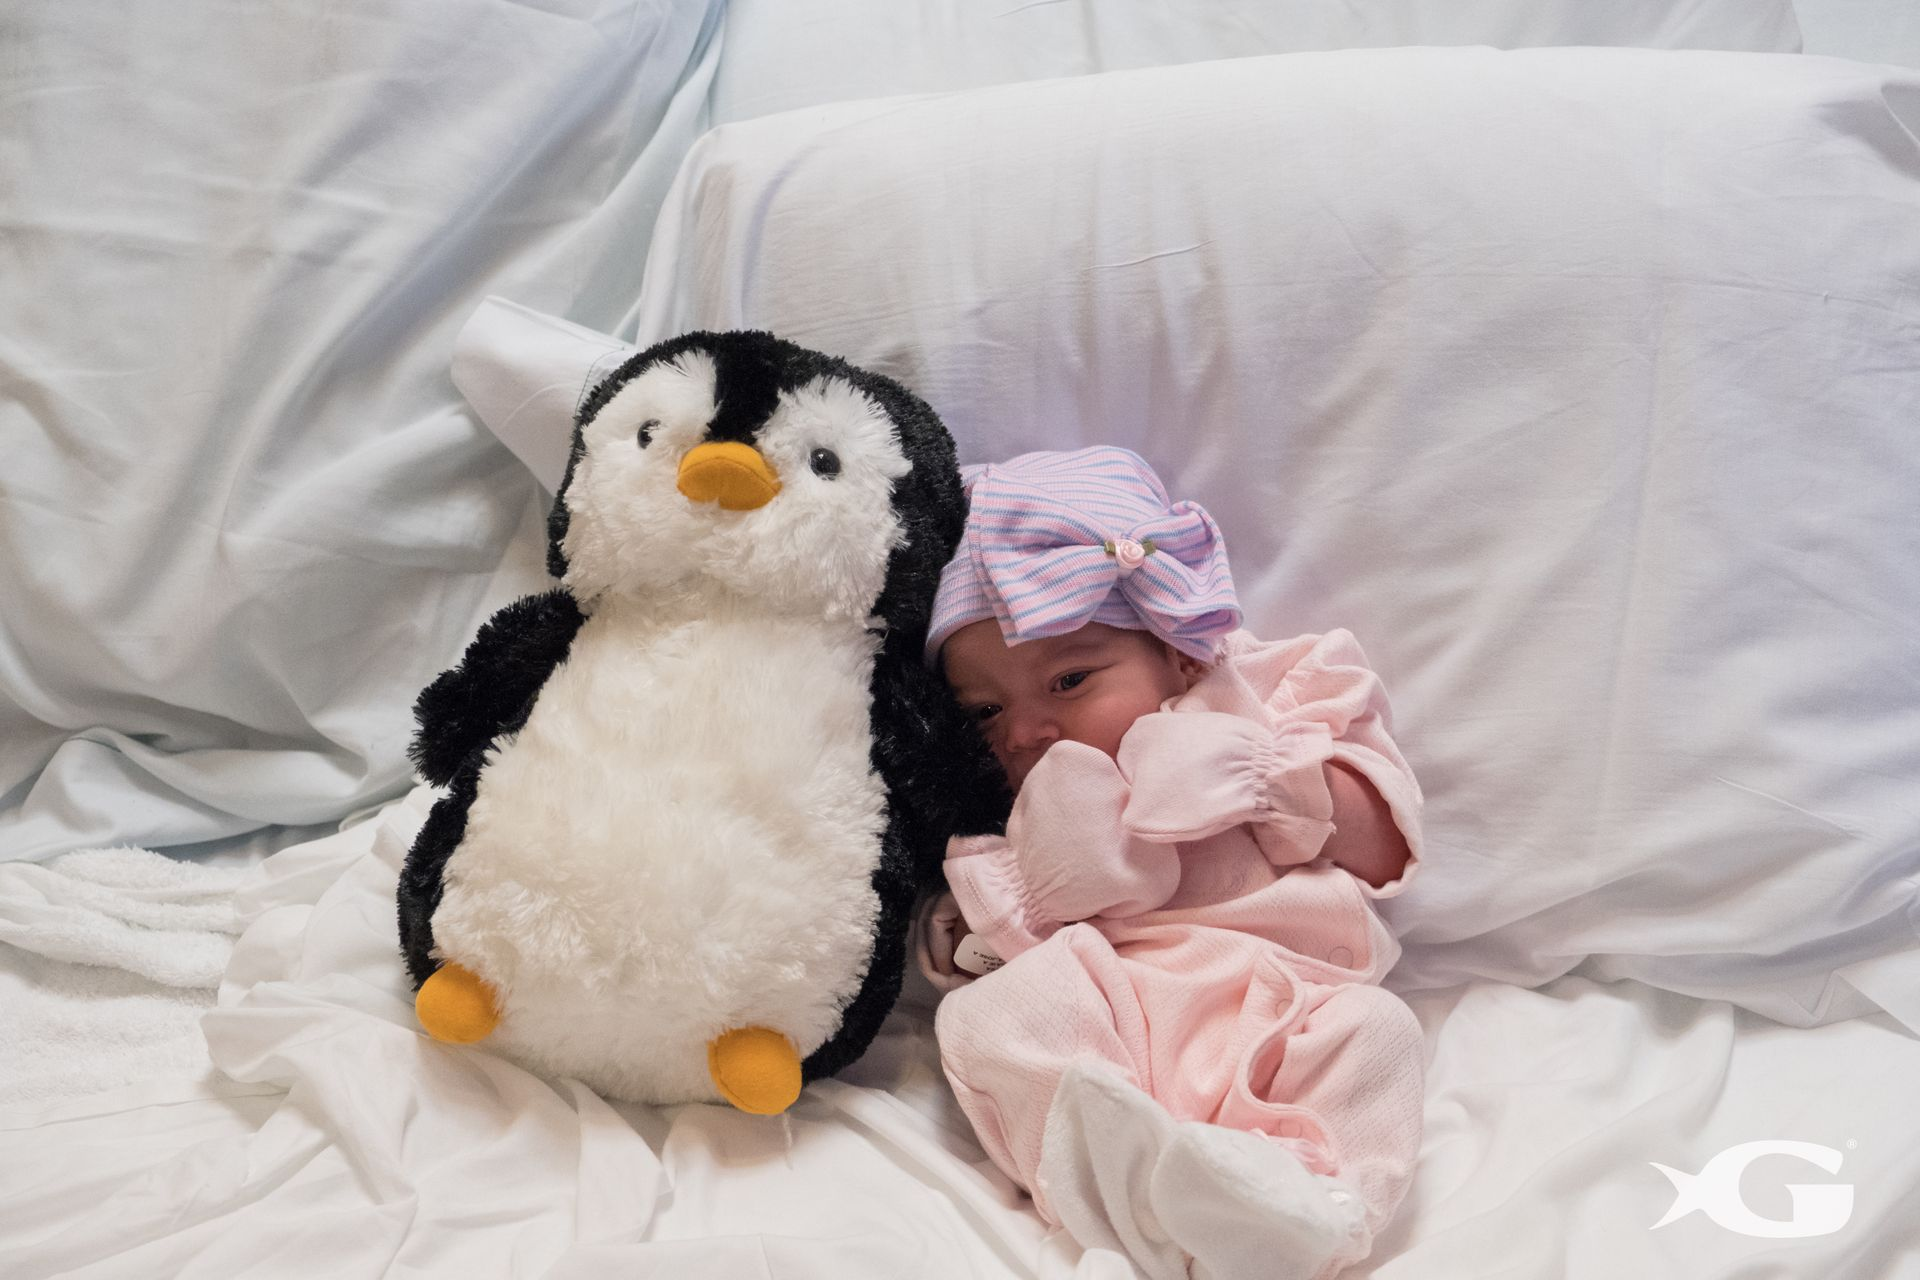 Newborn and Penguin 1